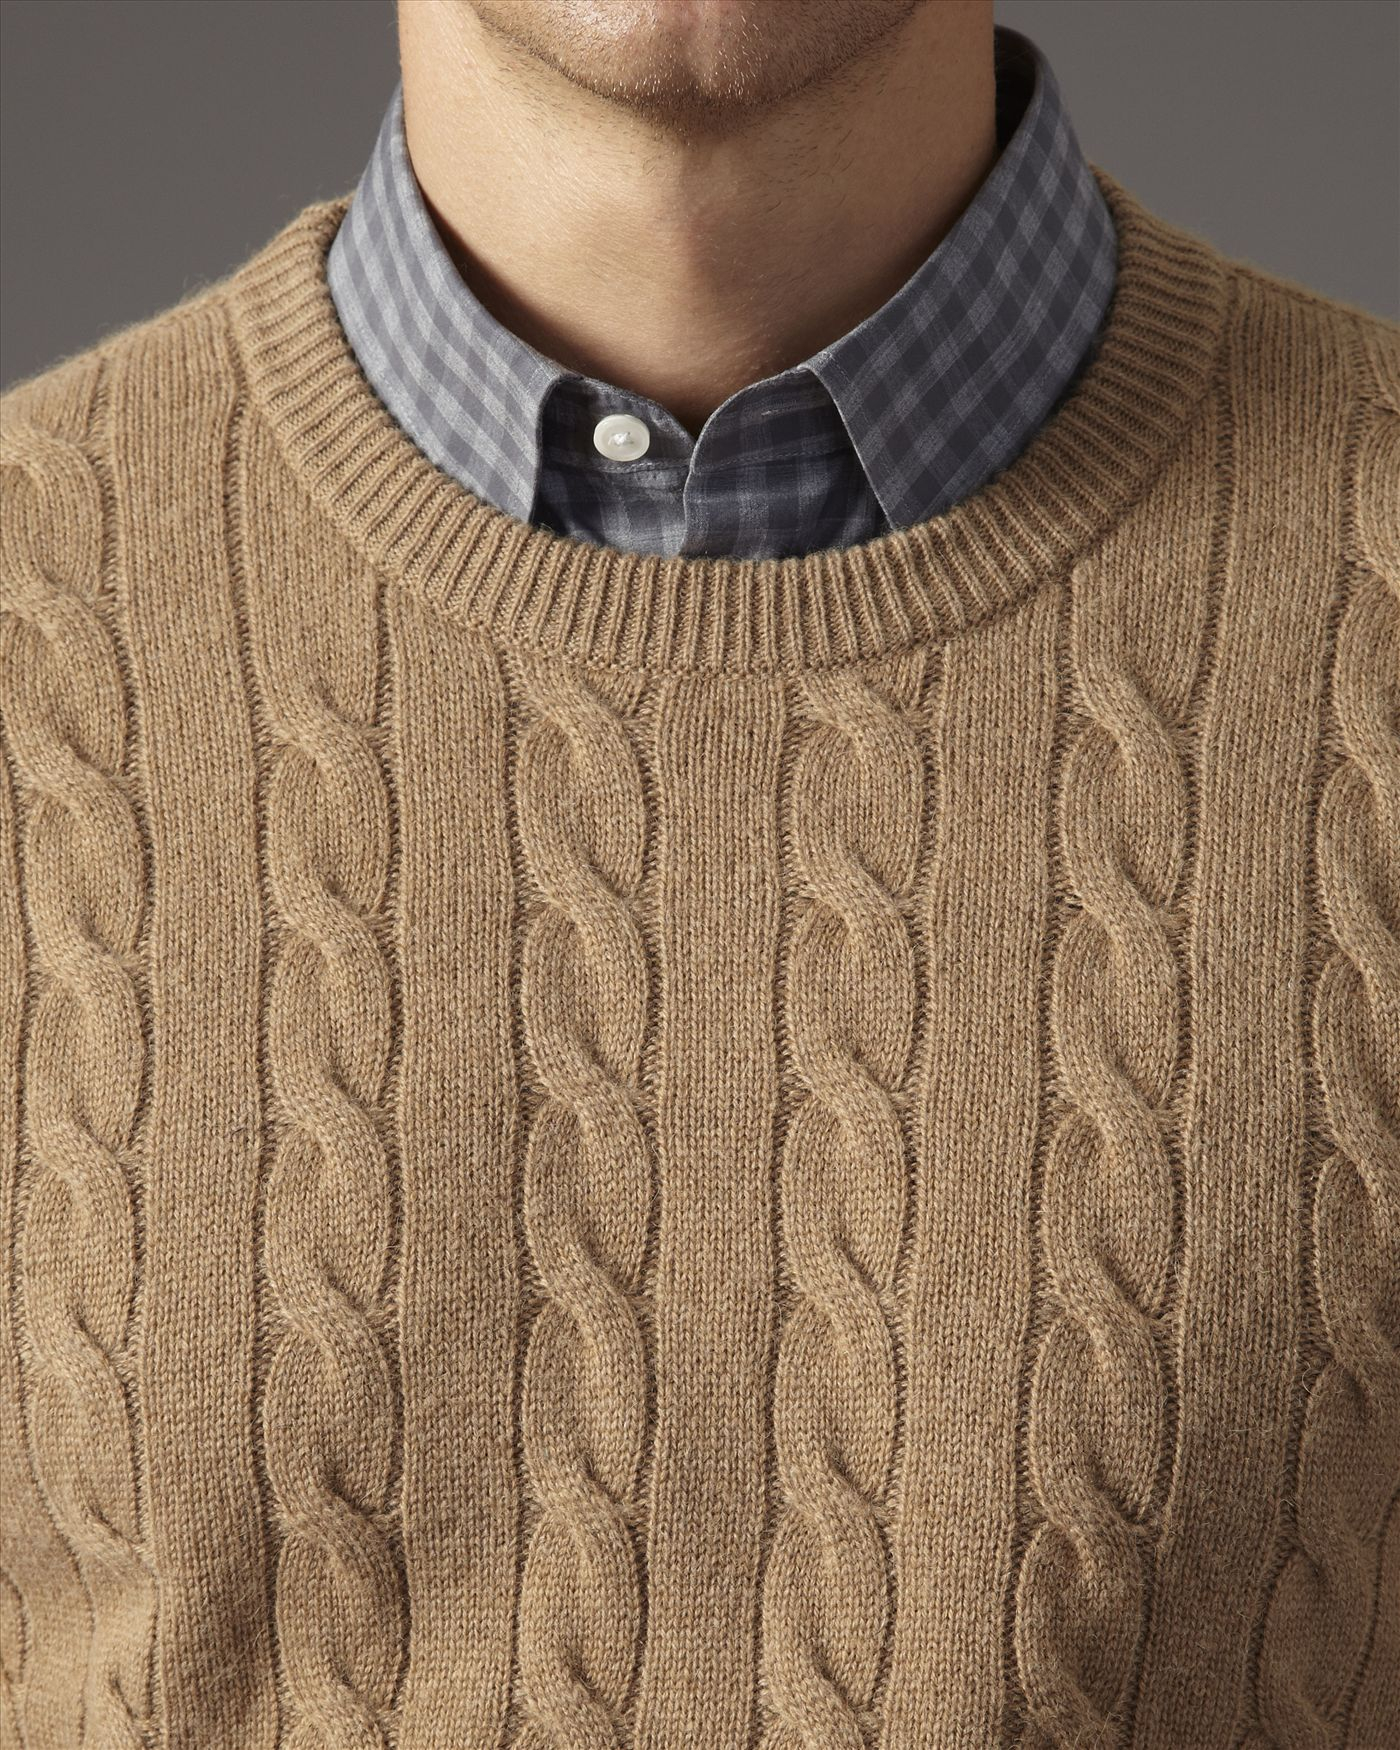 Jaeger Camel Hair Cable Knit Sweater in Natural for Men | Lyst